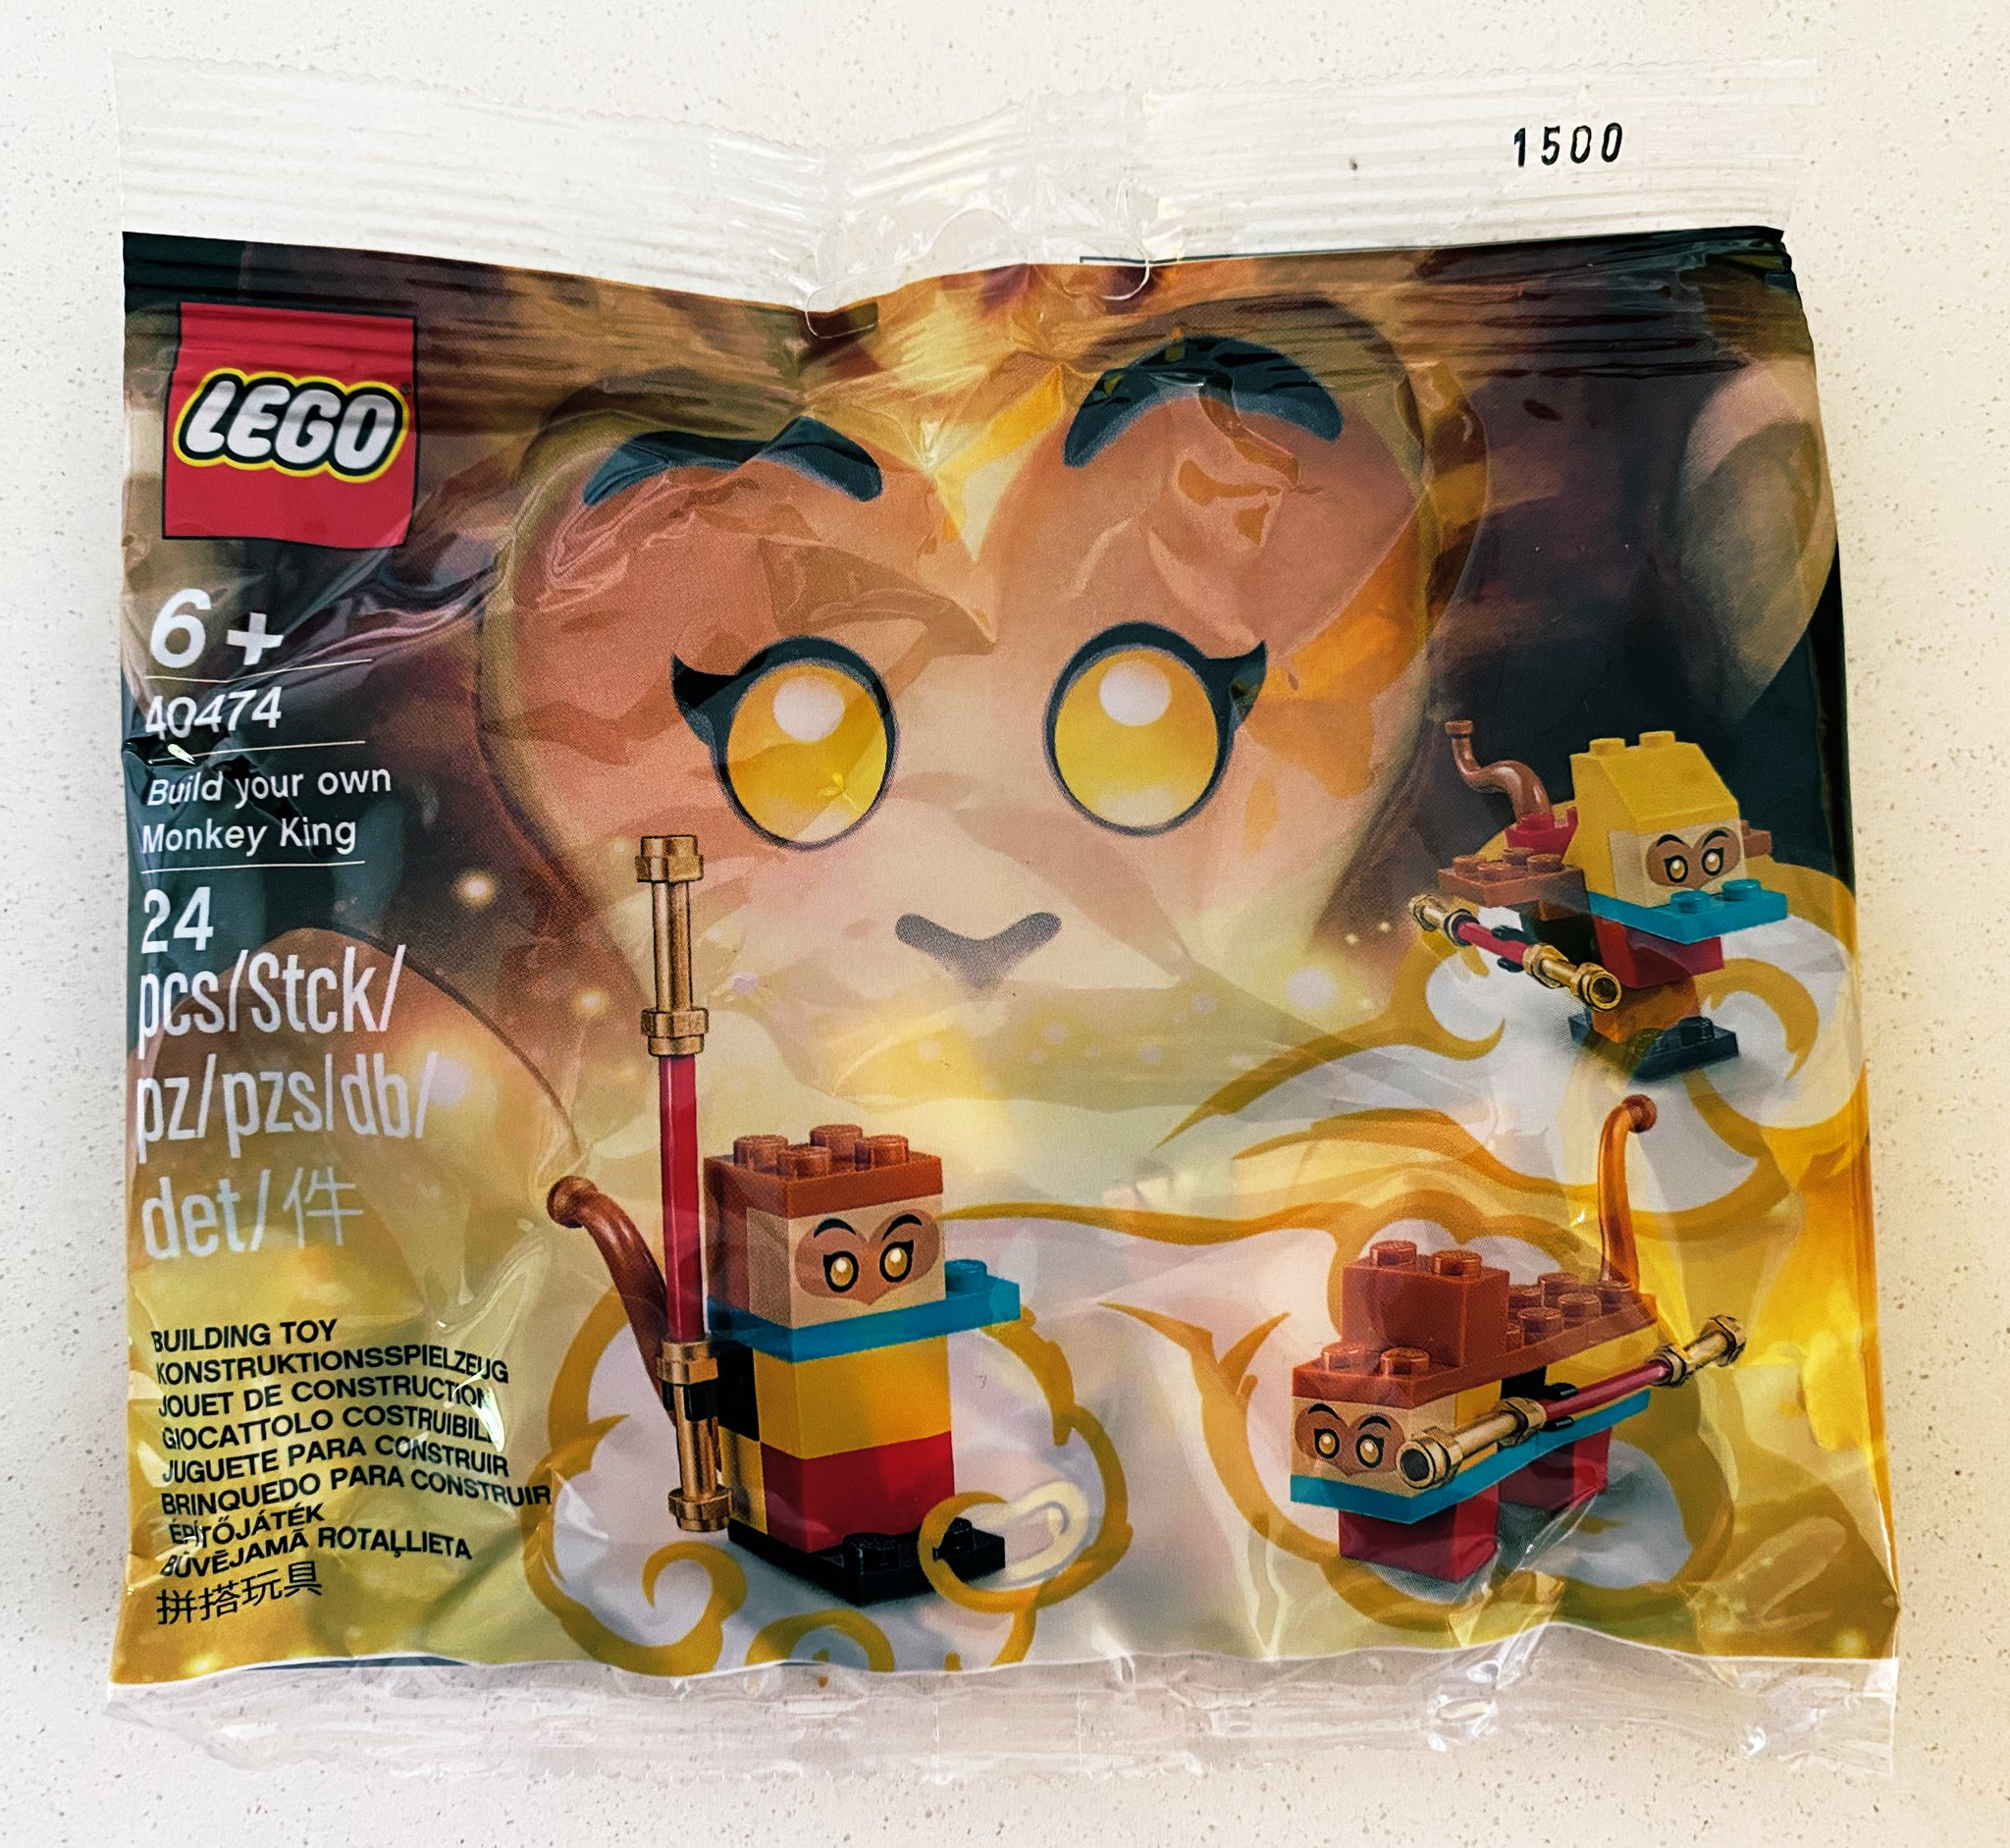 LEGO 40474 Monkey King Polybag